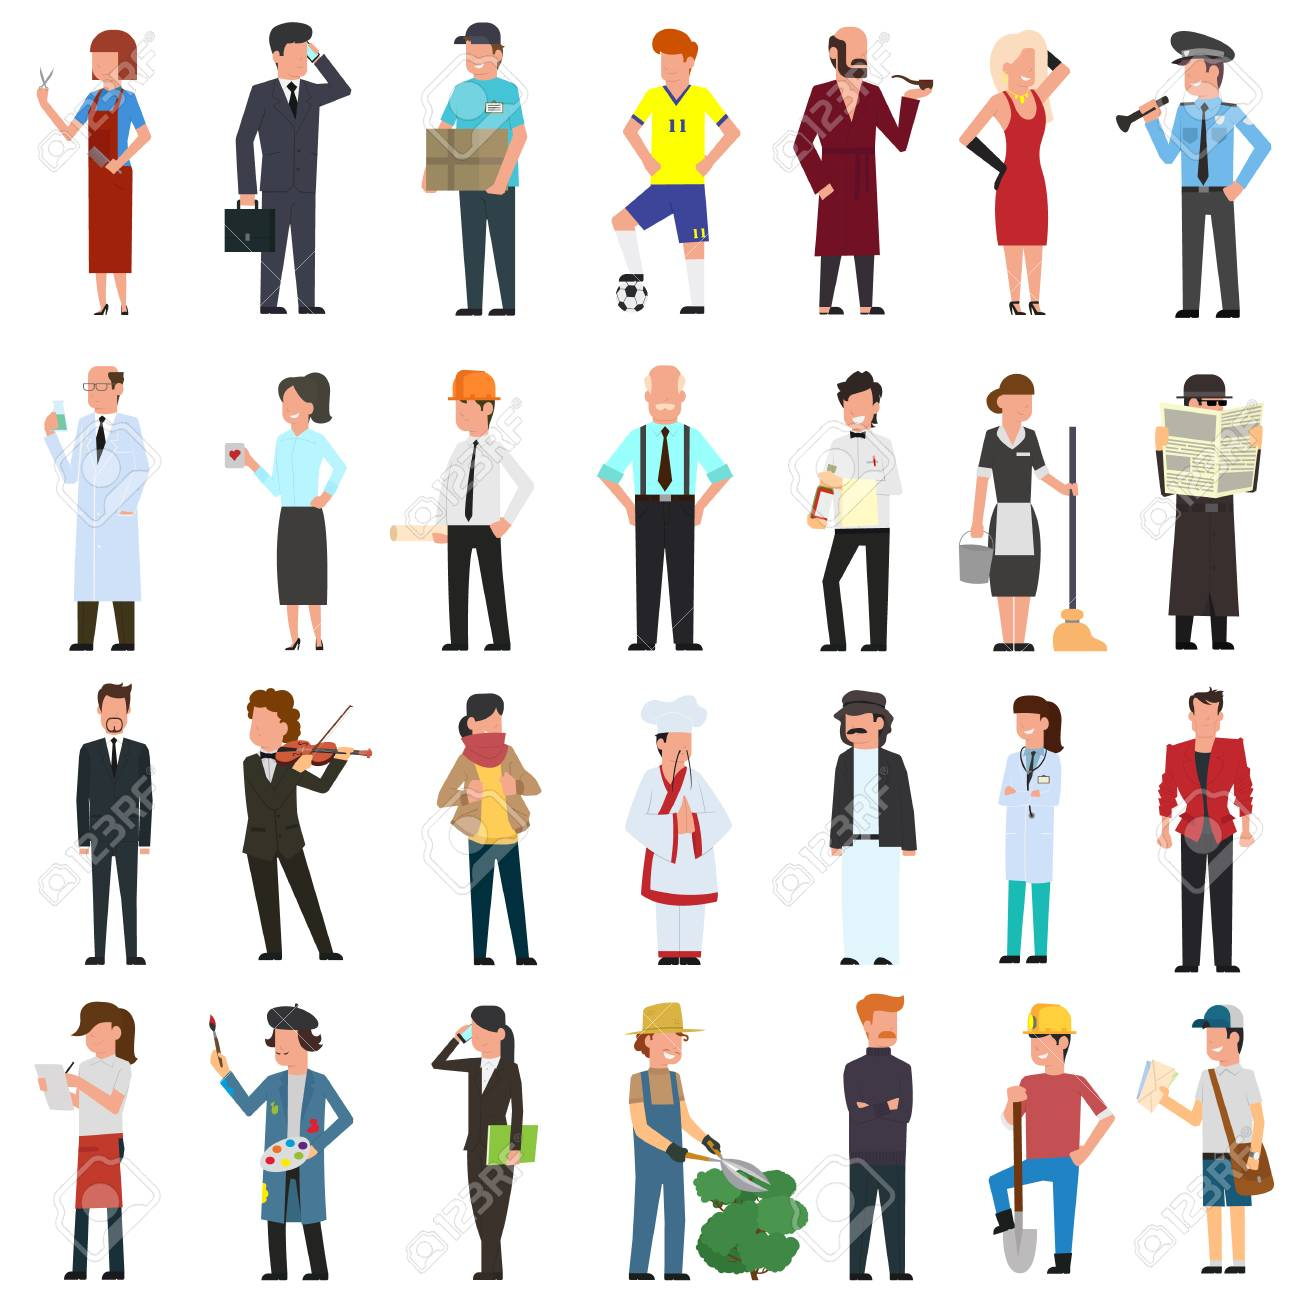 many simple characters of different professions. vector illustration in a flat style. - 112090582